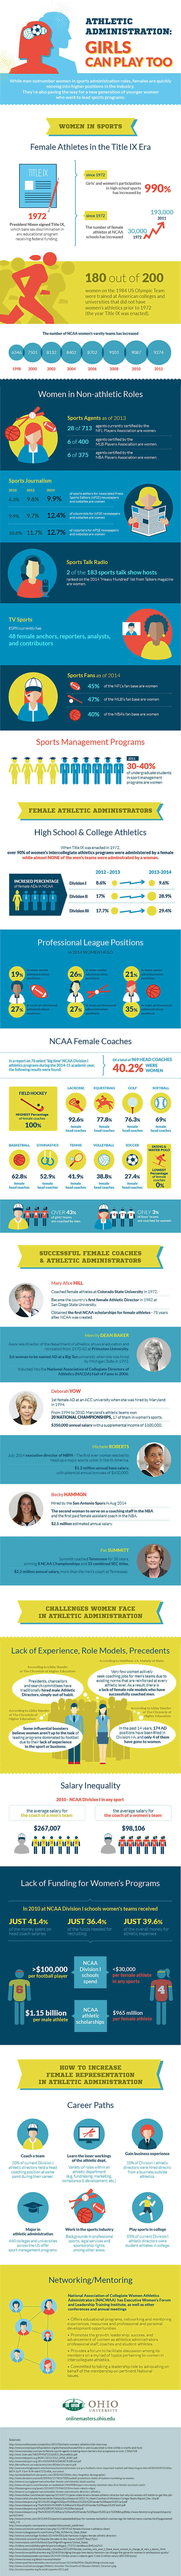 Athletic Administration: No Longer a Boy's Club infographic